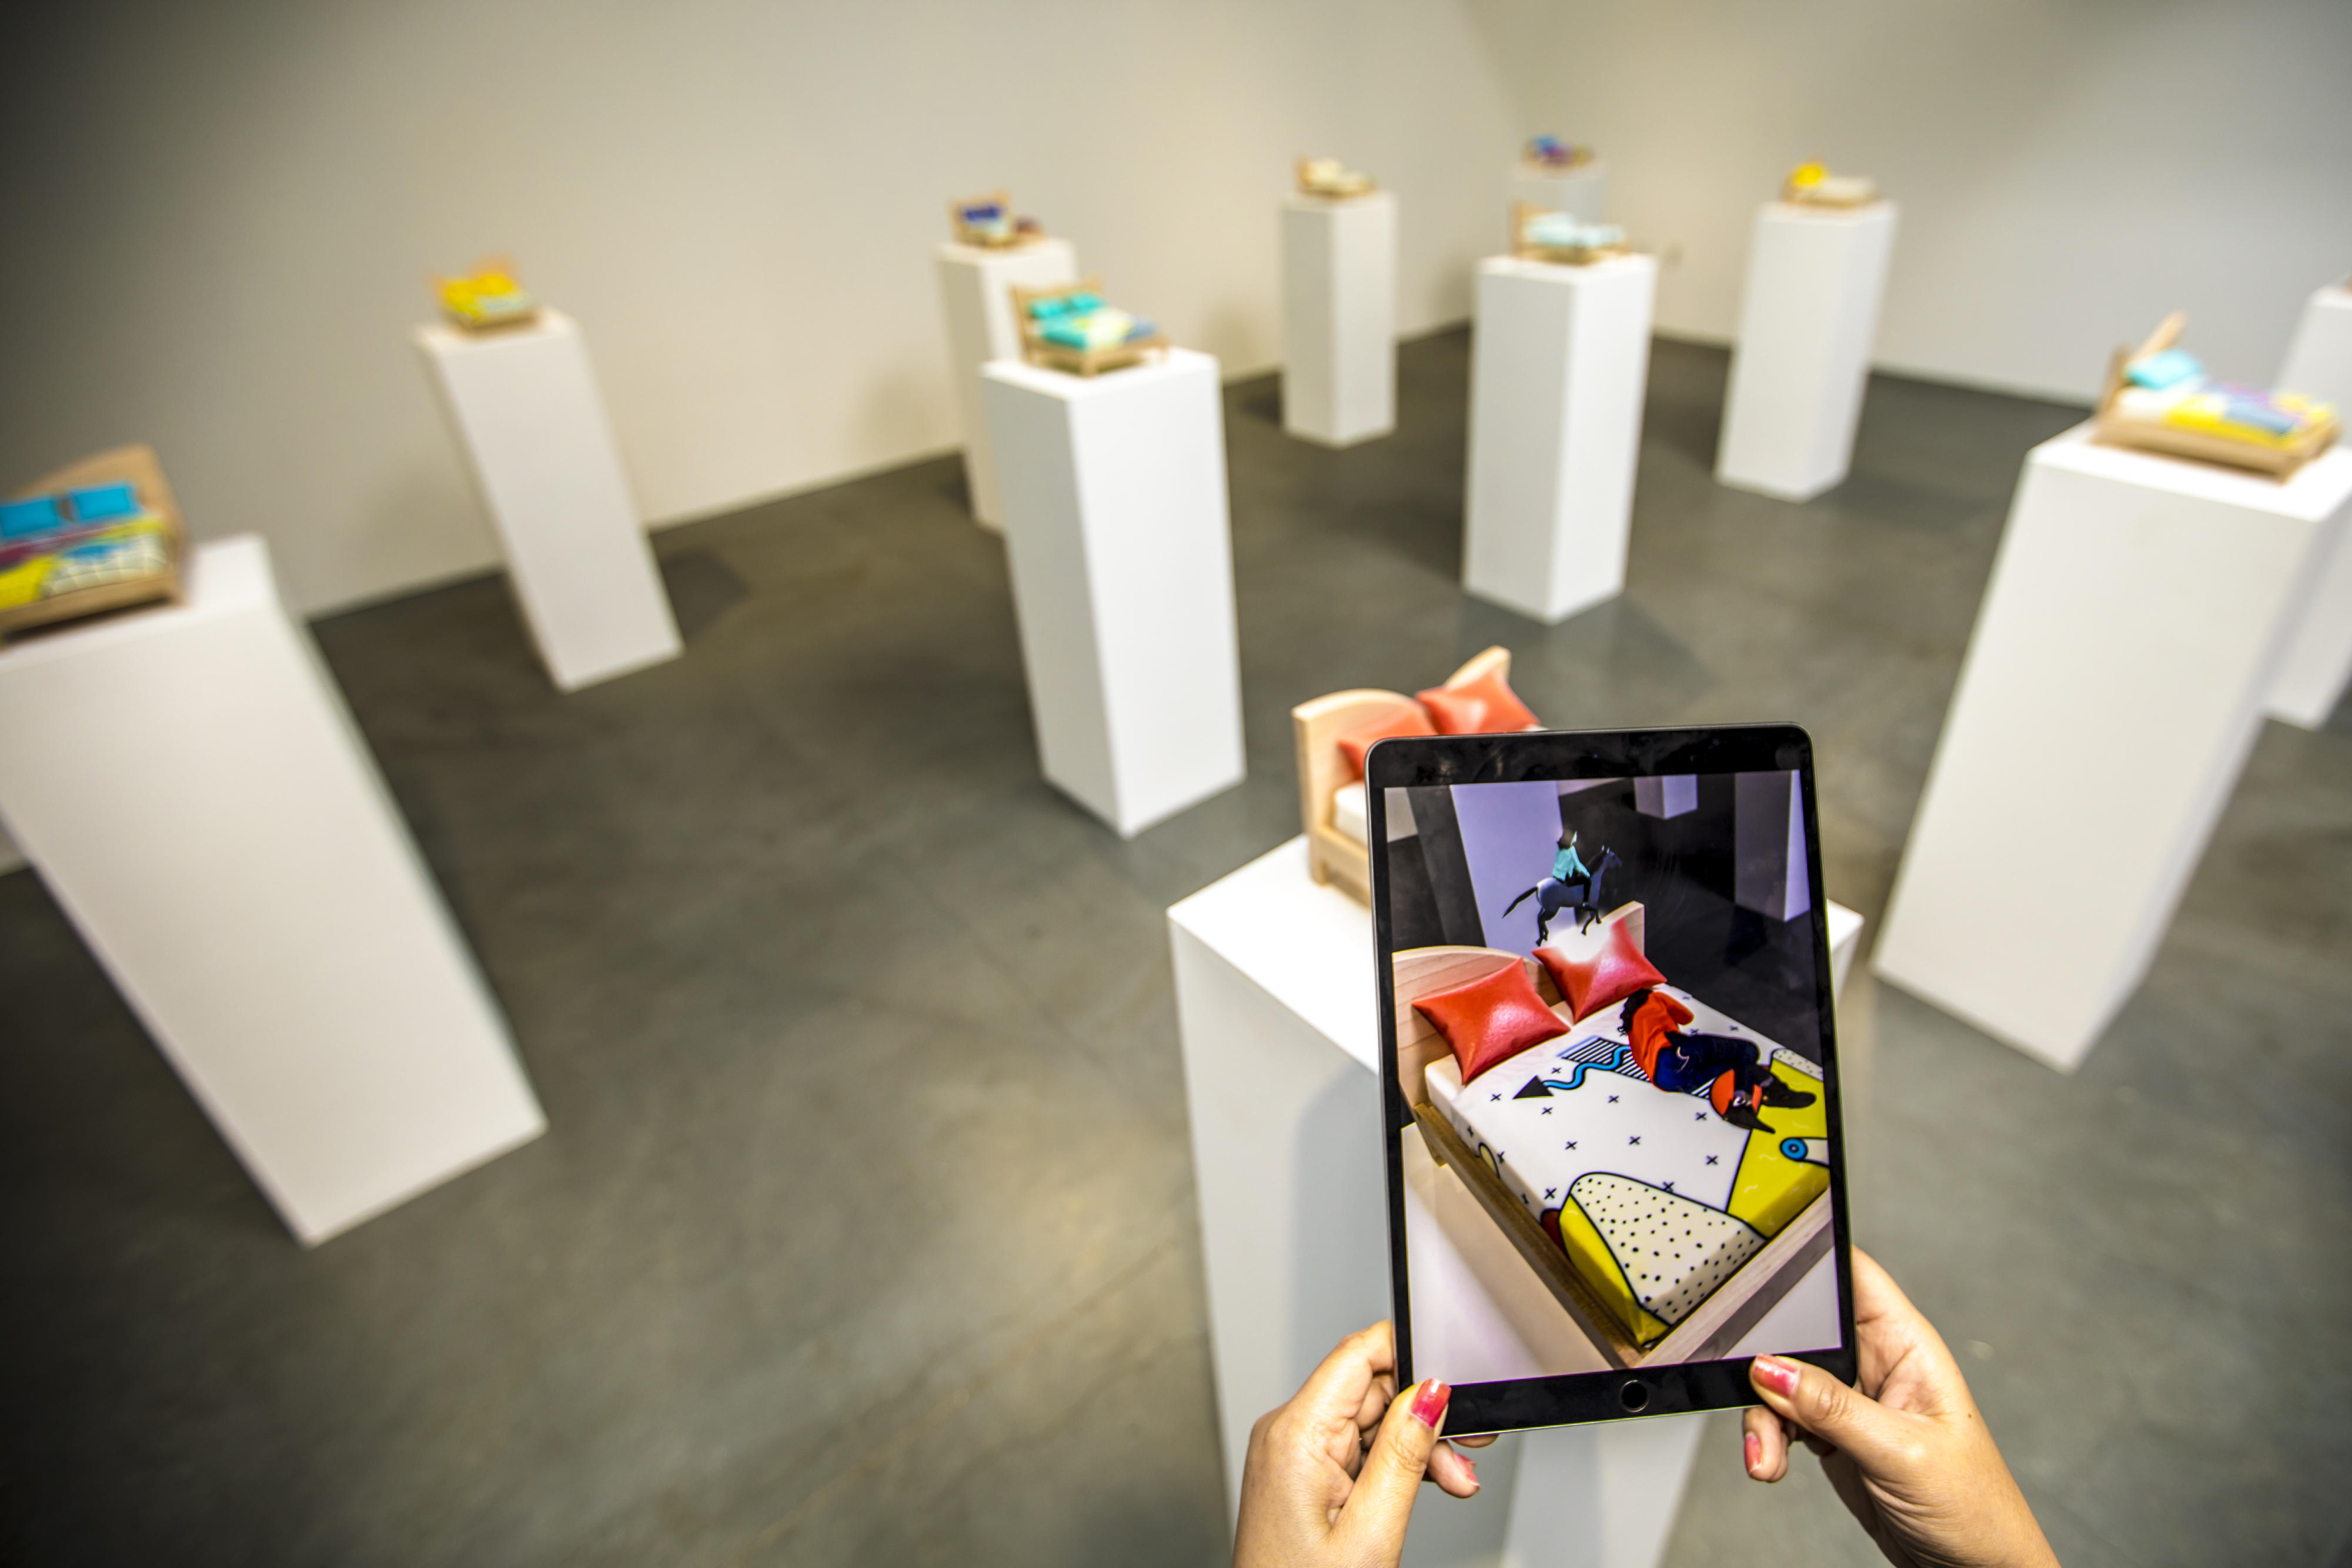 """Festival of Impossible augmented reality exhibition: """"Miniature bed sculptures act as platforms for artist Gabriel Barcia-Colombo's friends, who have been translated to avatars. The AR animations tell the story of each personality as we observe their dreams."""""""